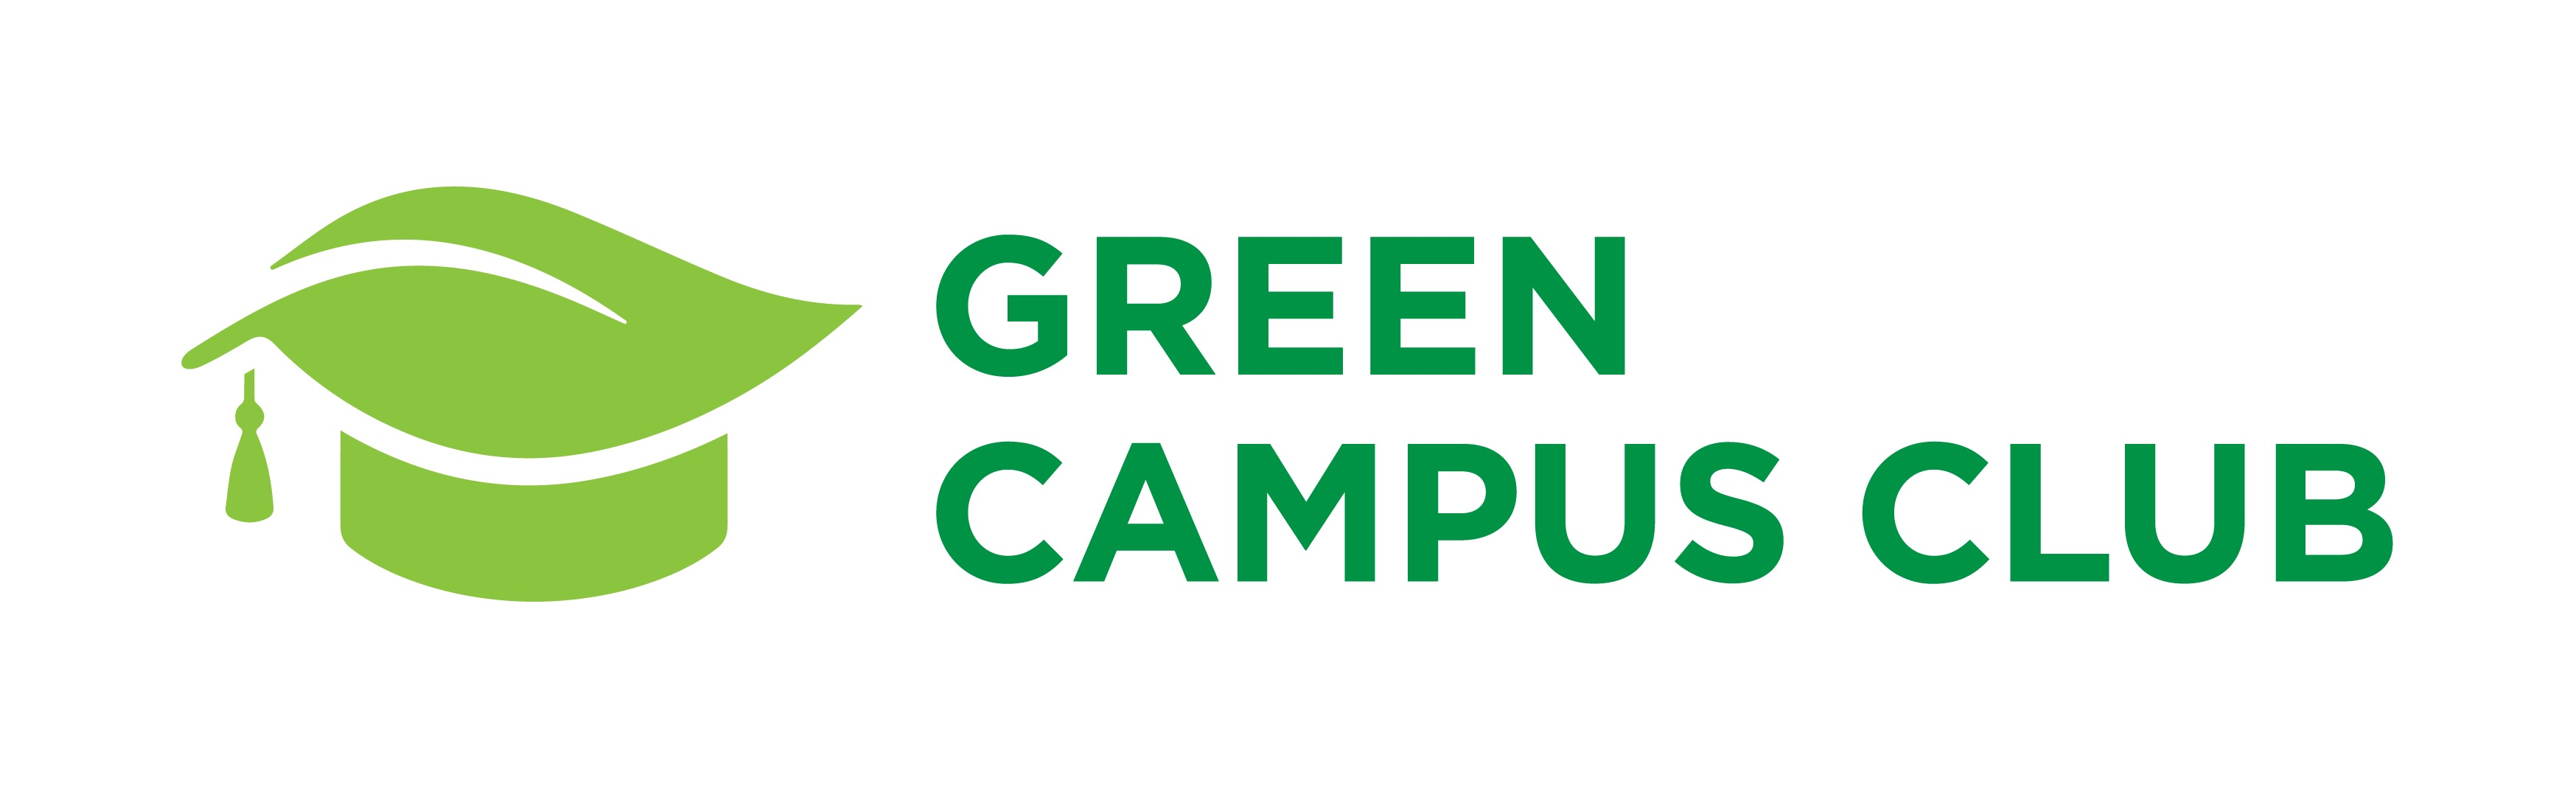 Green Campus Club Logo